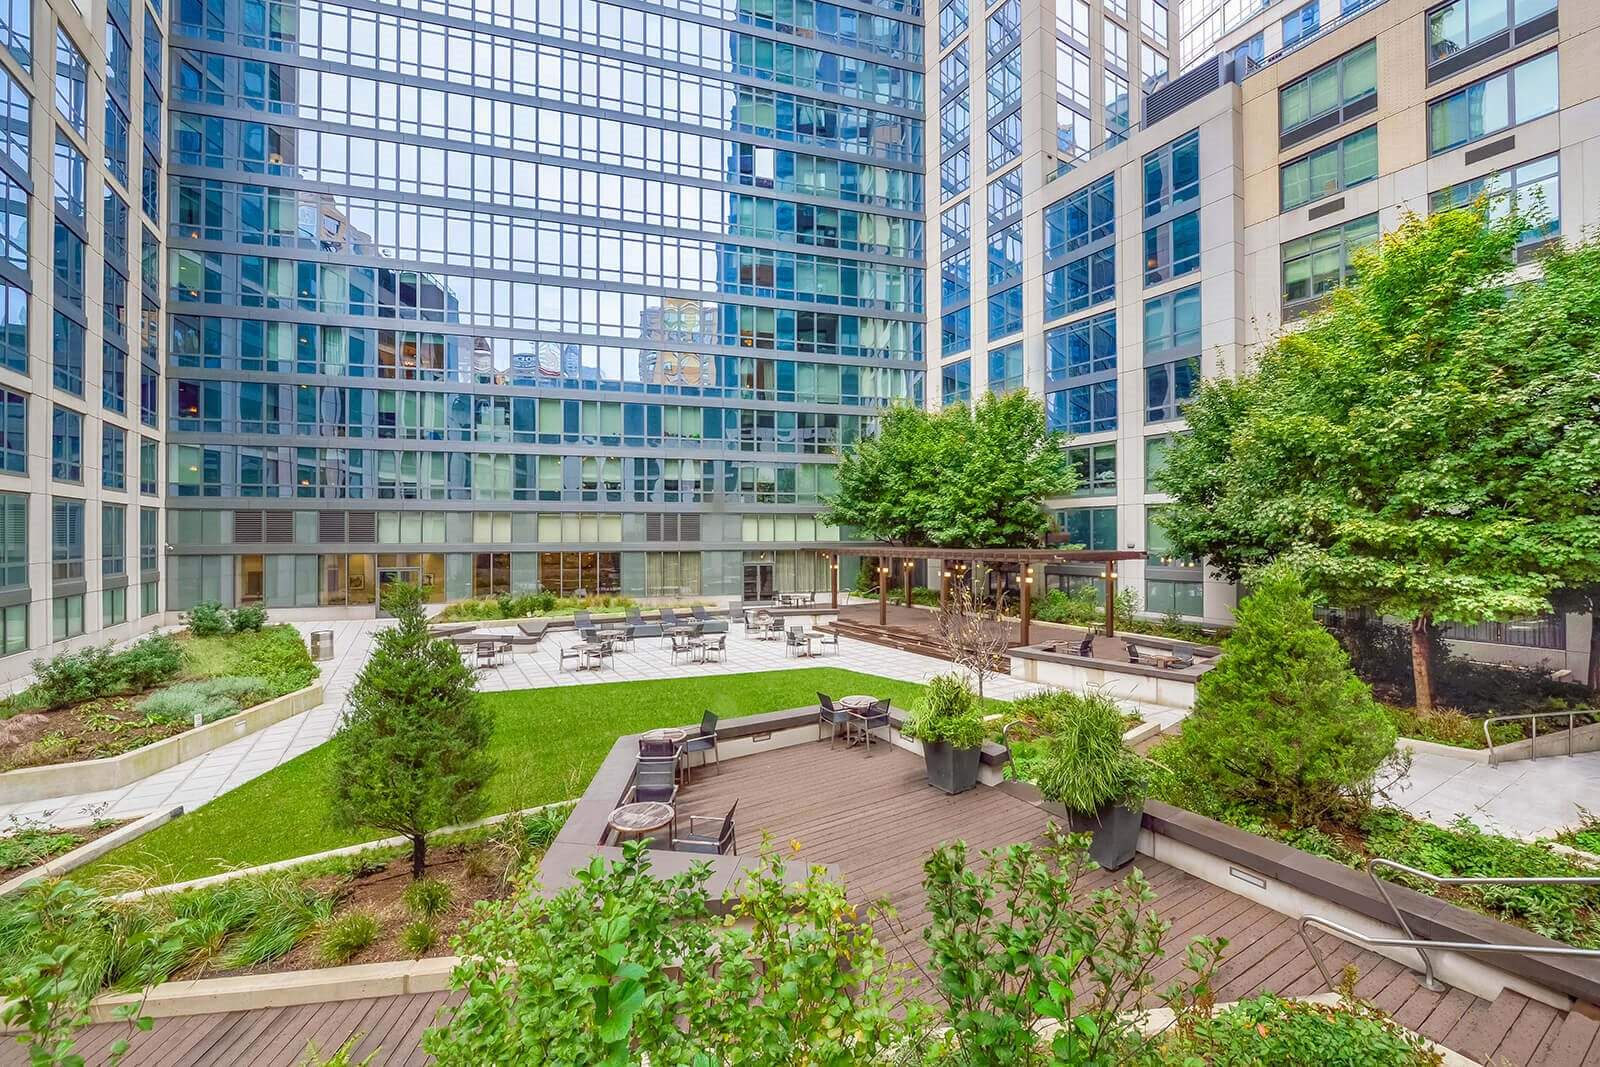 Landscaped courtyard at The Ashley, New York, 10069